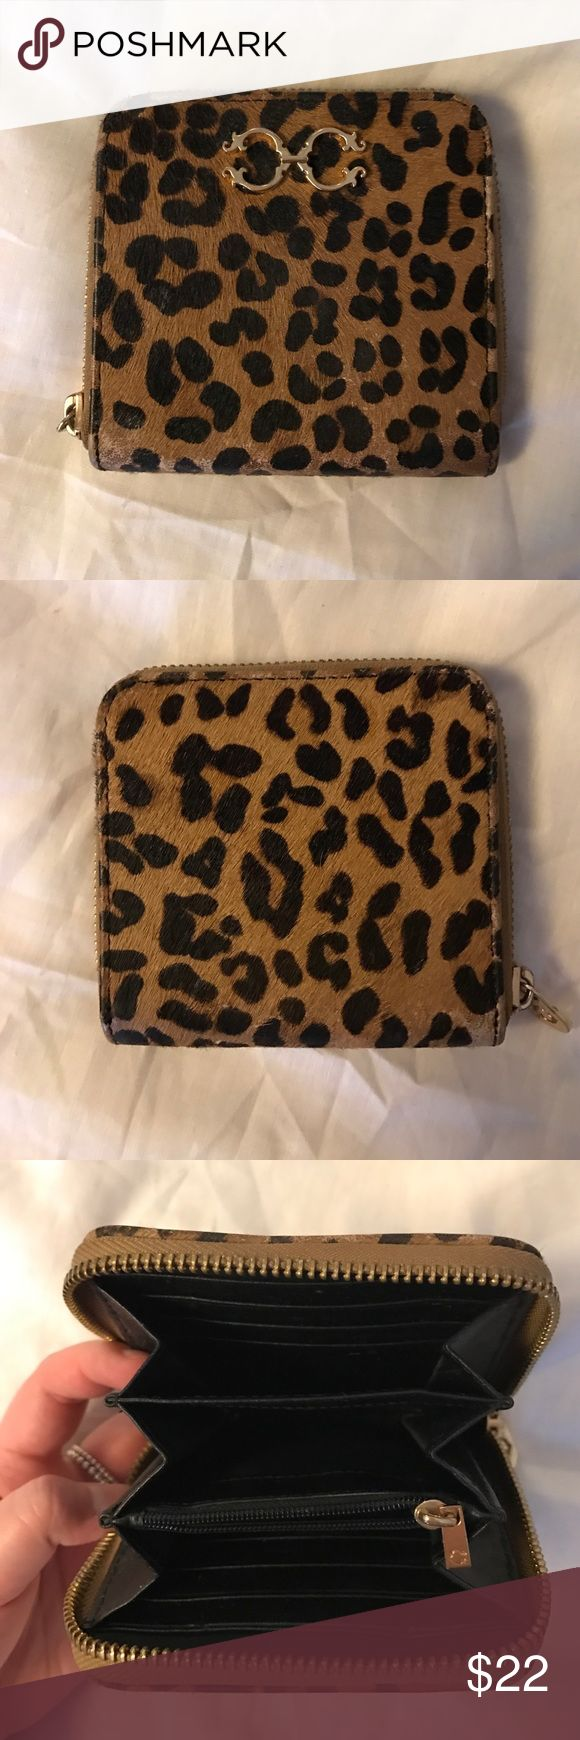 C Wonder Cheetah Zipper Wallet Rare cheetah print small zipper wallet with original tag and bag! The wallet was used only a handful of times with minor scuffing c wonder Bags Wallets